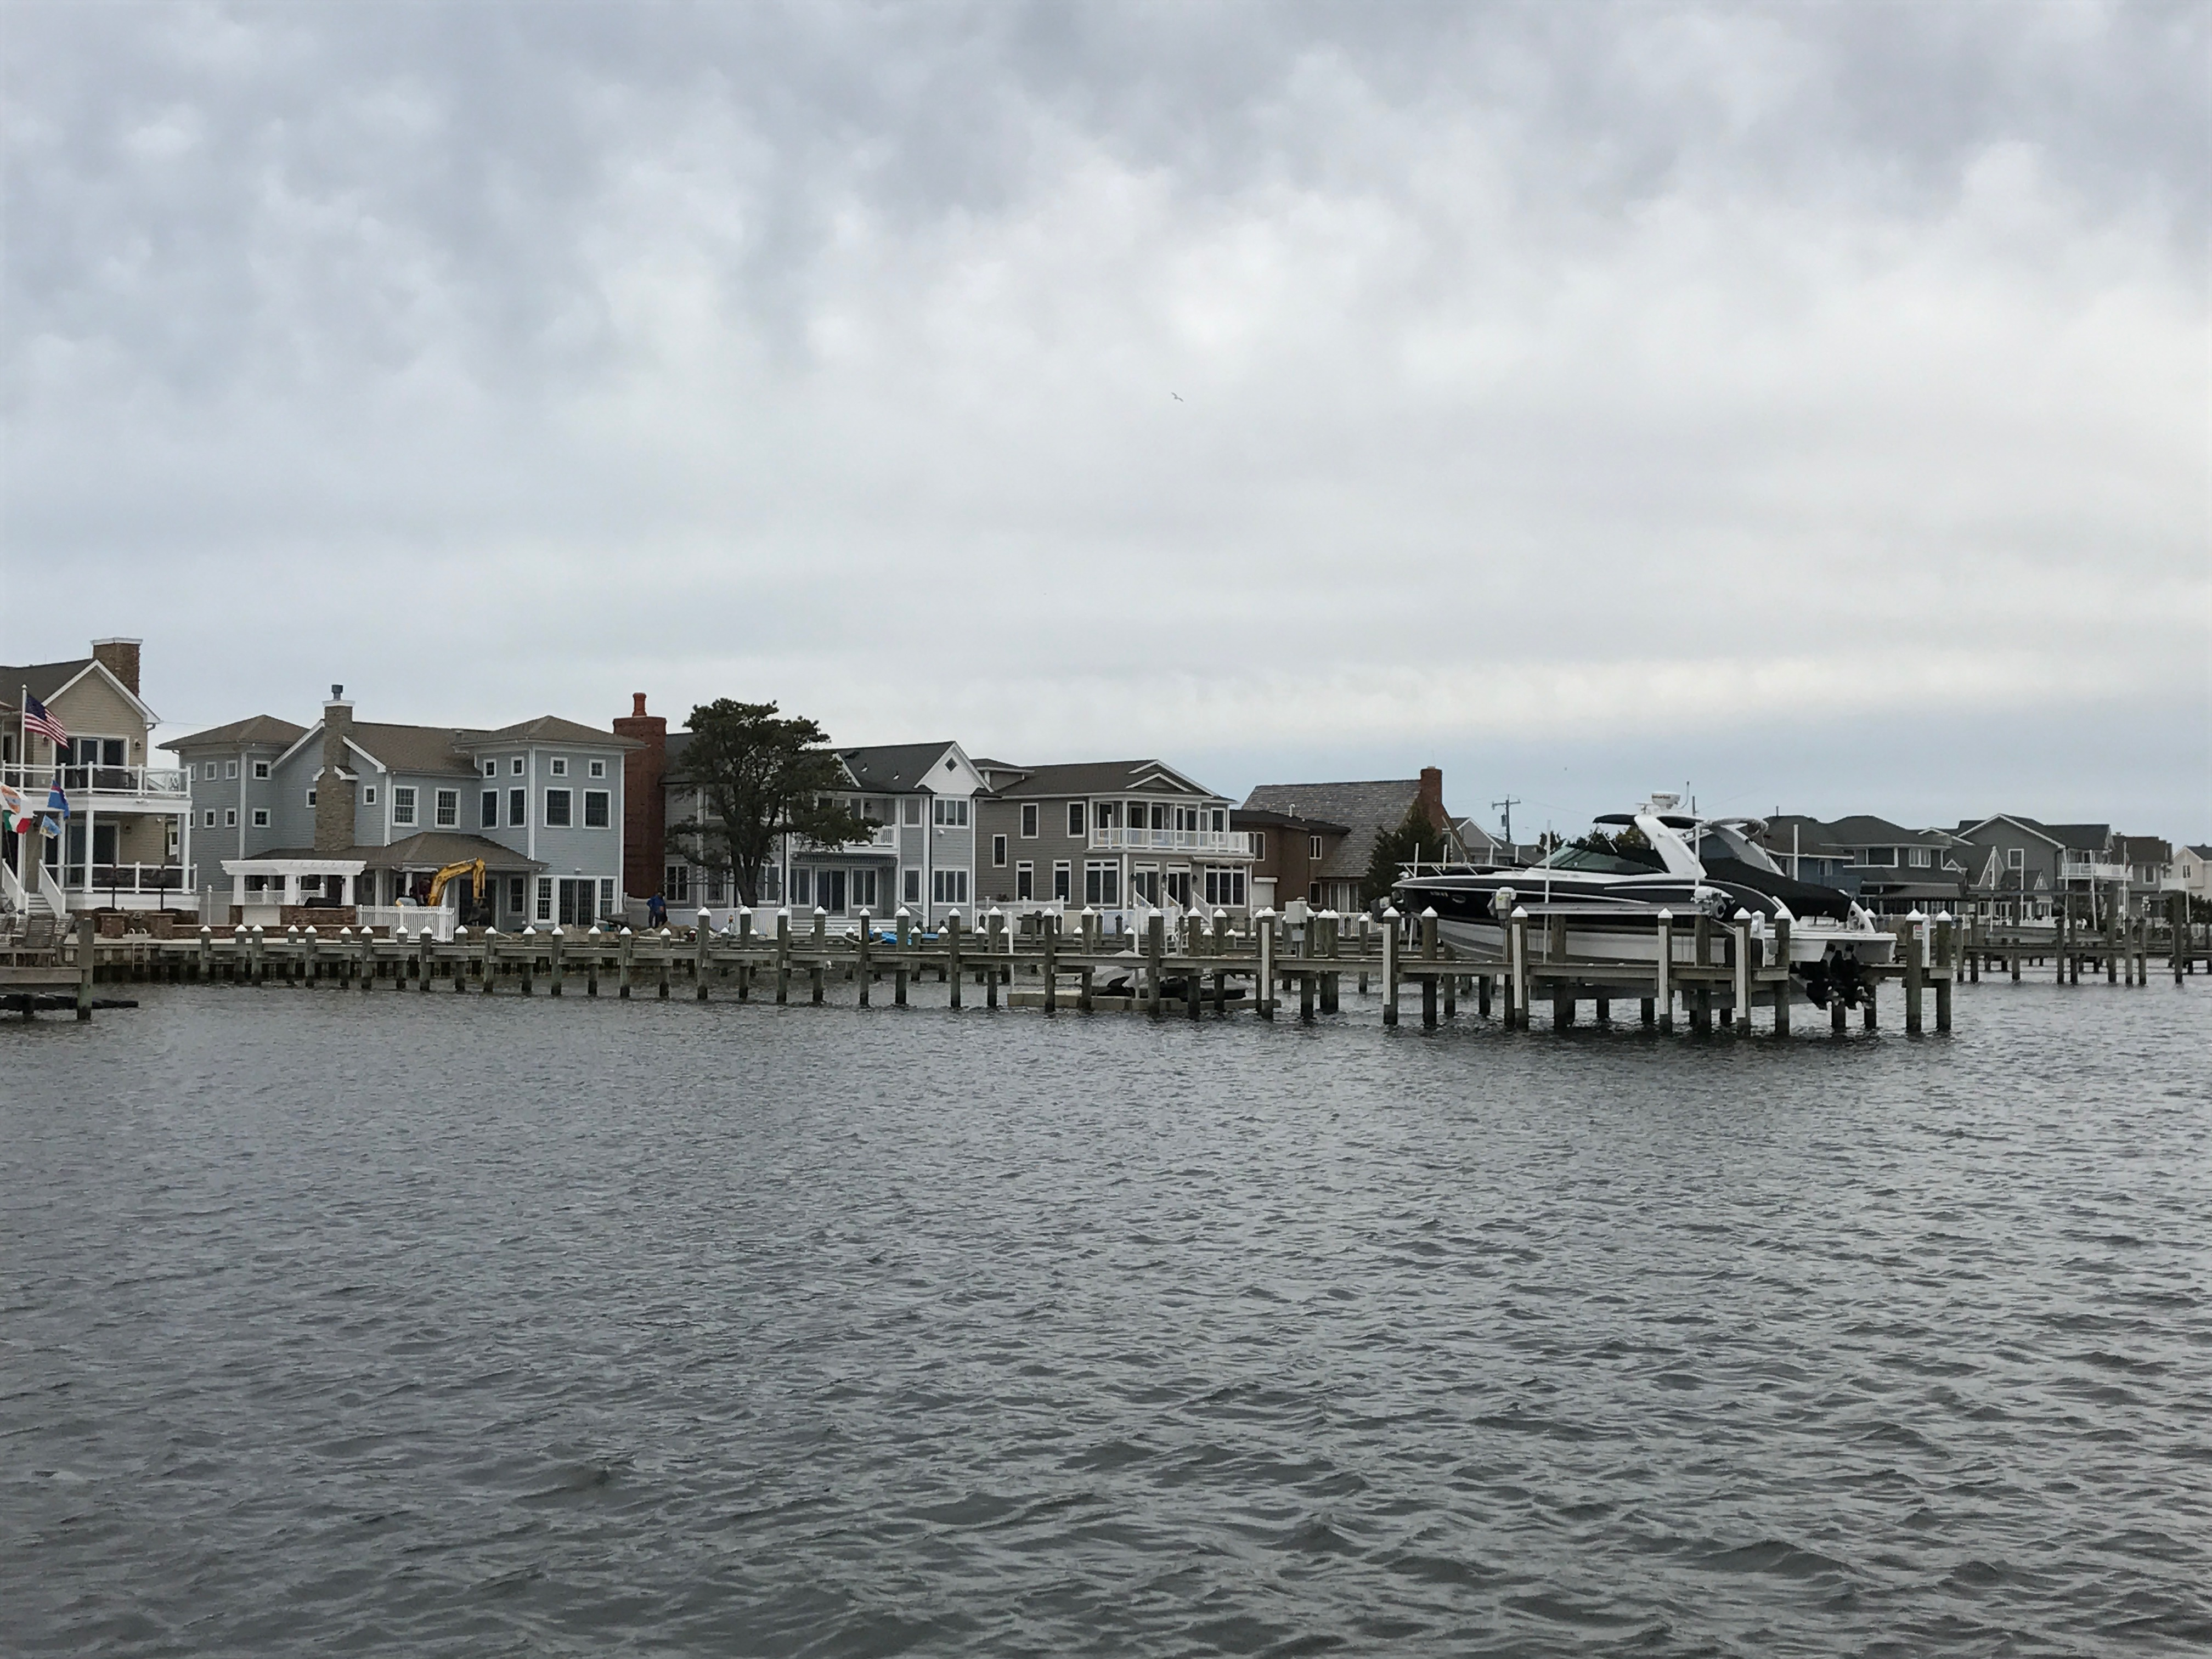 A boat dock extends out into Barnegat Bay. (Photo: Daniel Nee)